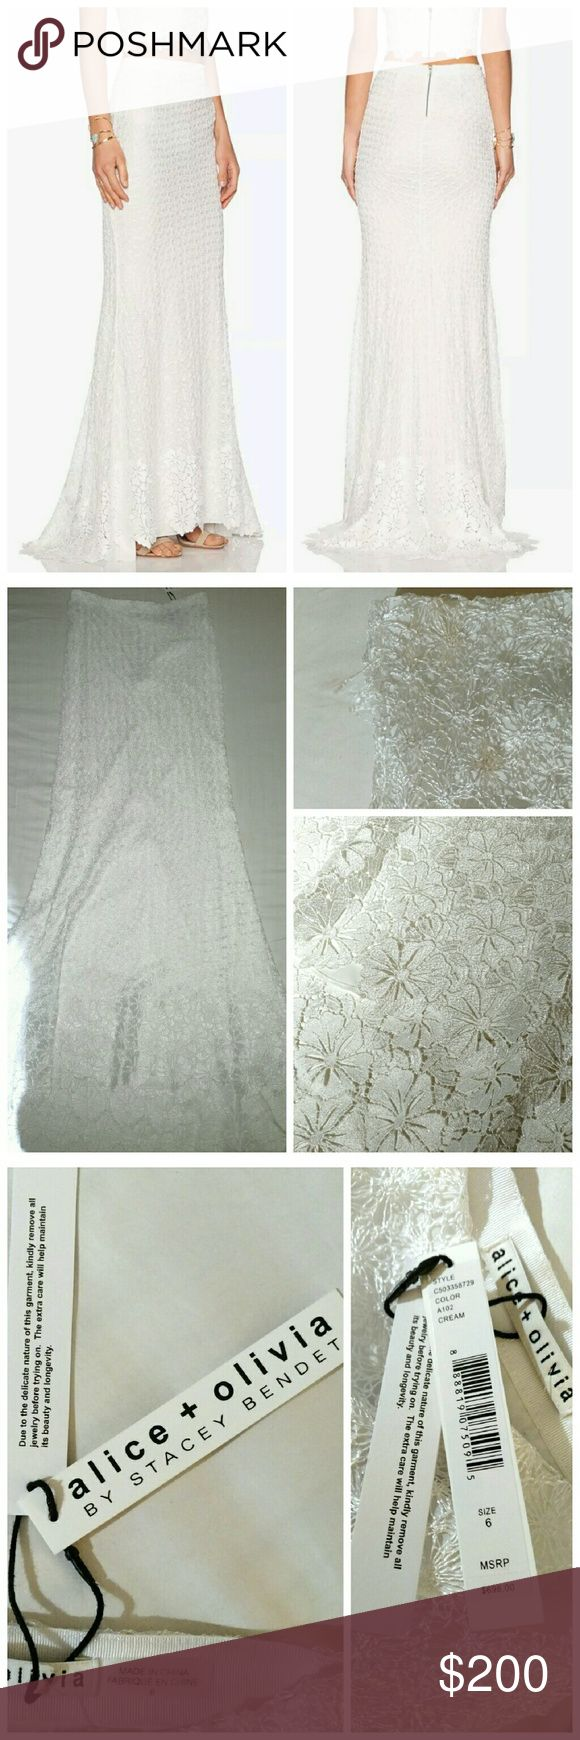 NEW Alice + Olivia Lace Maxi Dress White Size 6 Draped in Guipure lace with trumpet style train makes a gorgeous addition to your wardrobe!  Perfect for a fancy night out or for a bridal occasion, fully lined.  *Minor loose thread by side waist, see 2nd photo.  A few minor thread pulls due to the delicate nature of fabric, nothing major.* It shows color is cream but it is white in my opinion.  Even more beautiful in person!  😍  No ❌ trades Alice + Olivia Skirts Maxi